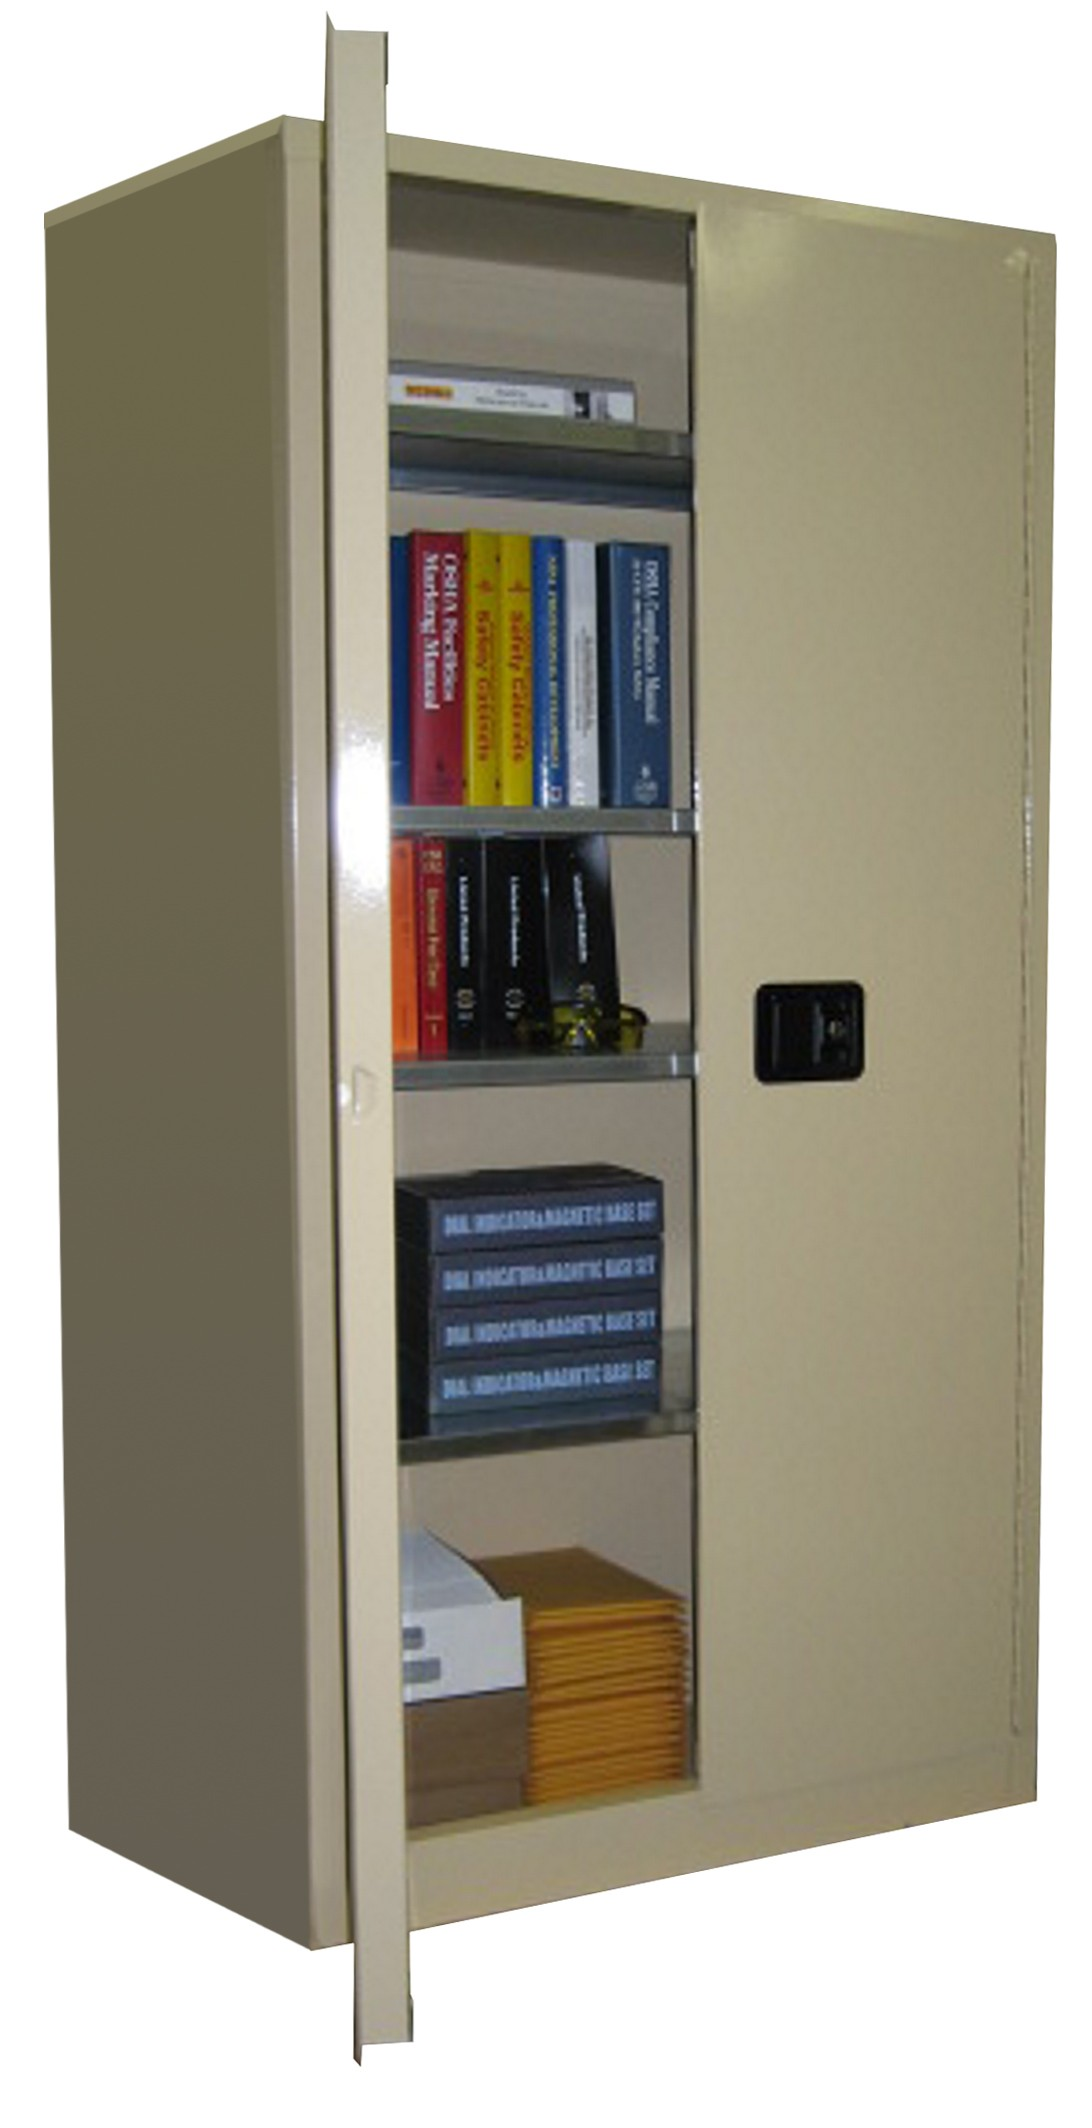 SS272 - Industrial Storage Cabinet - 36 Cubic Feet Capacity